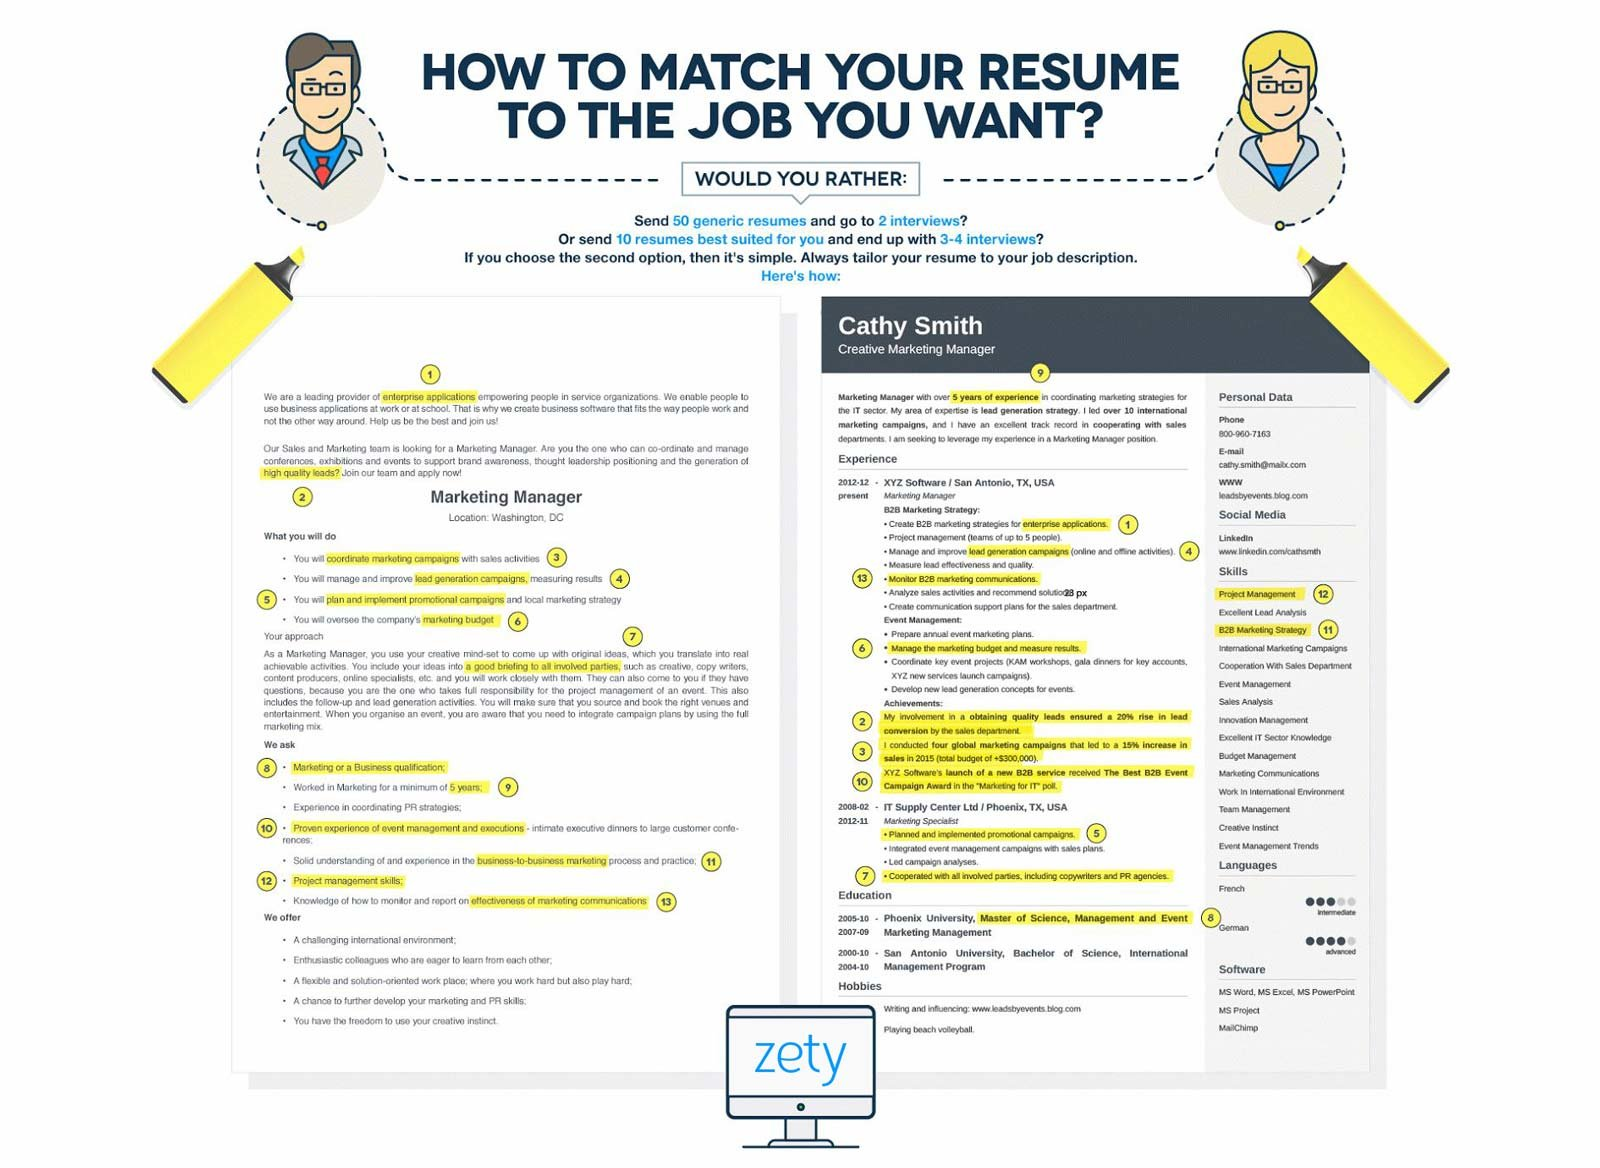 Exceptional How To Write A Resume And Tailor It To Job Description Idea How To Write A Proper Resume